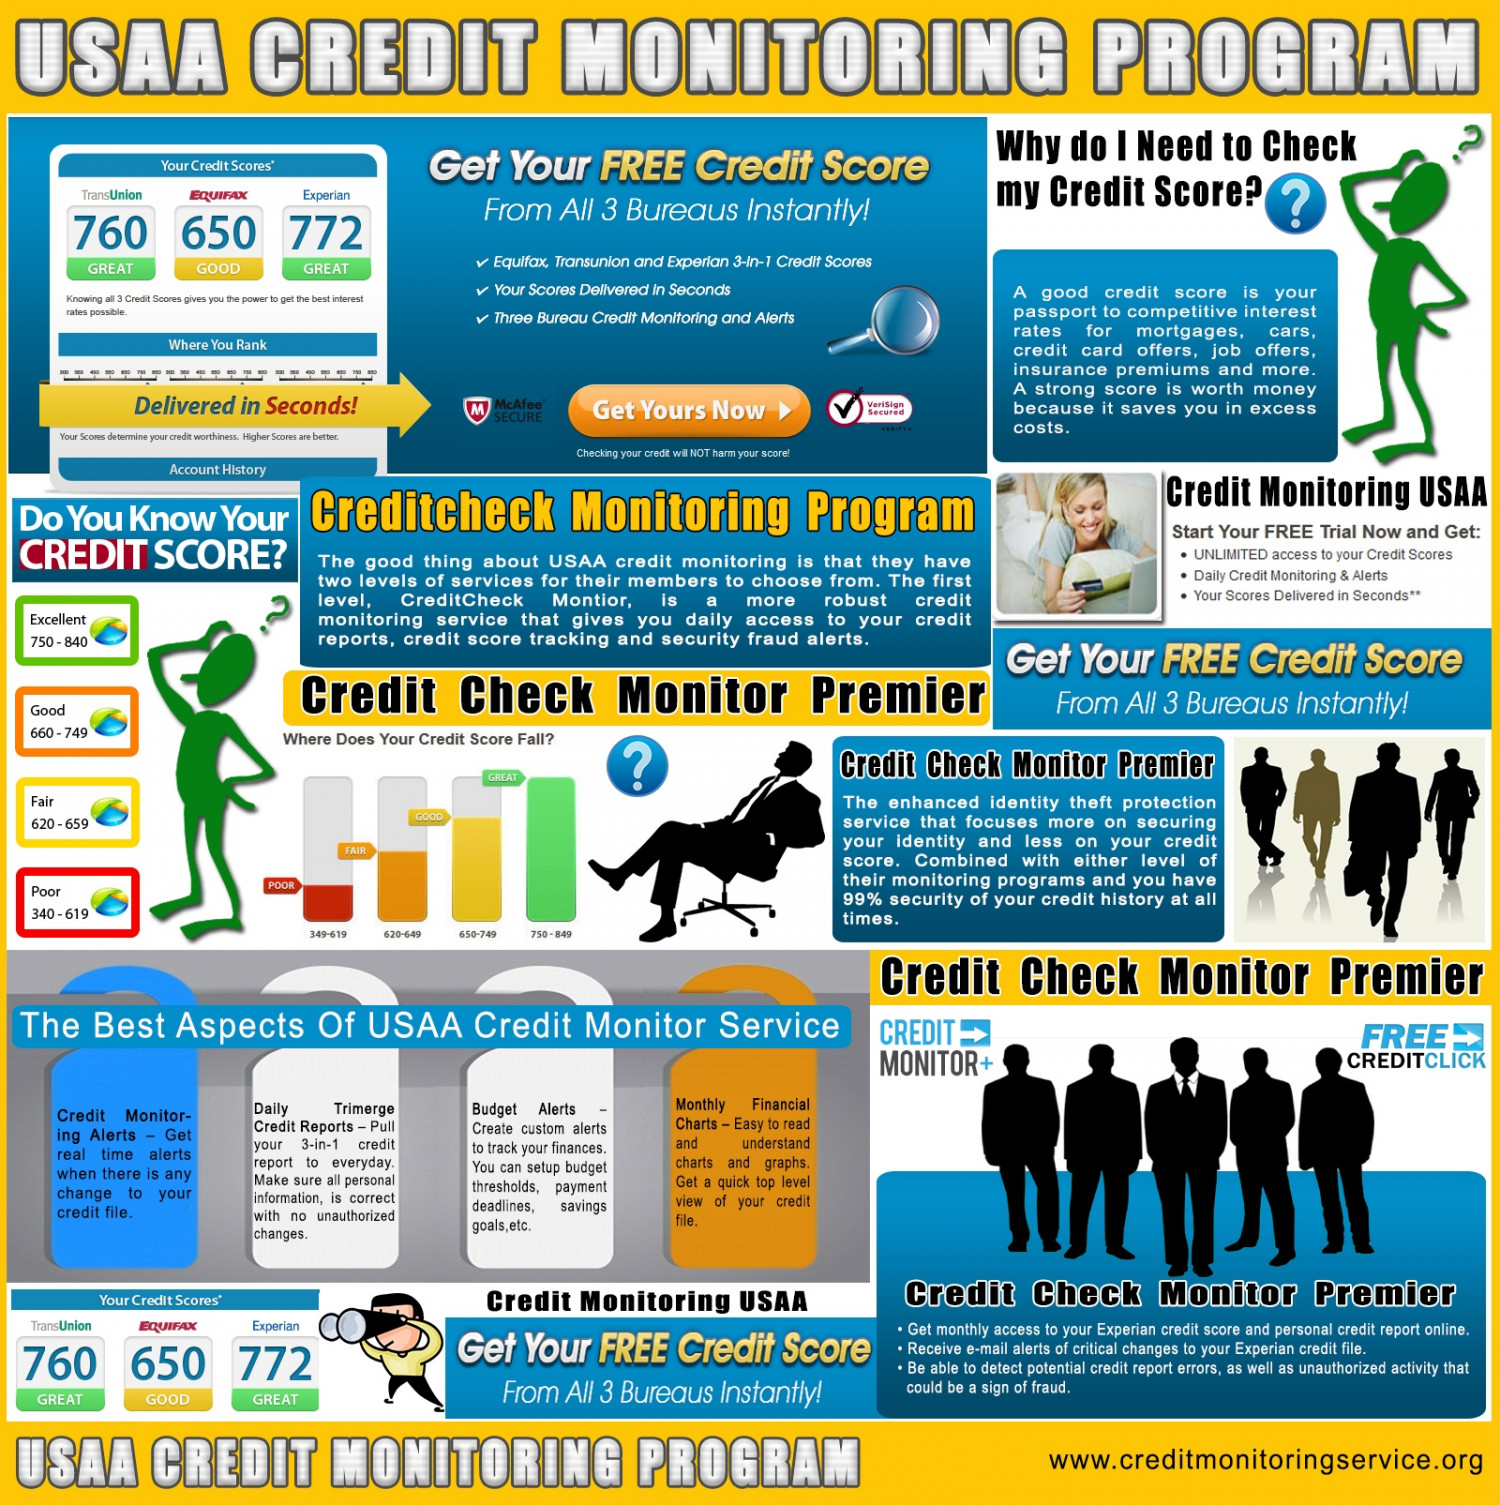 USAA Credit Monitoring Program Infographic